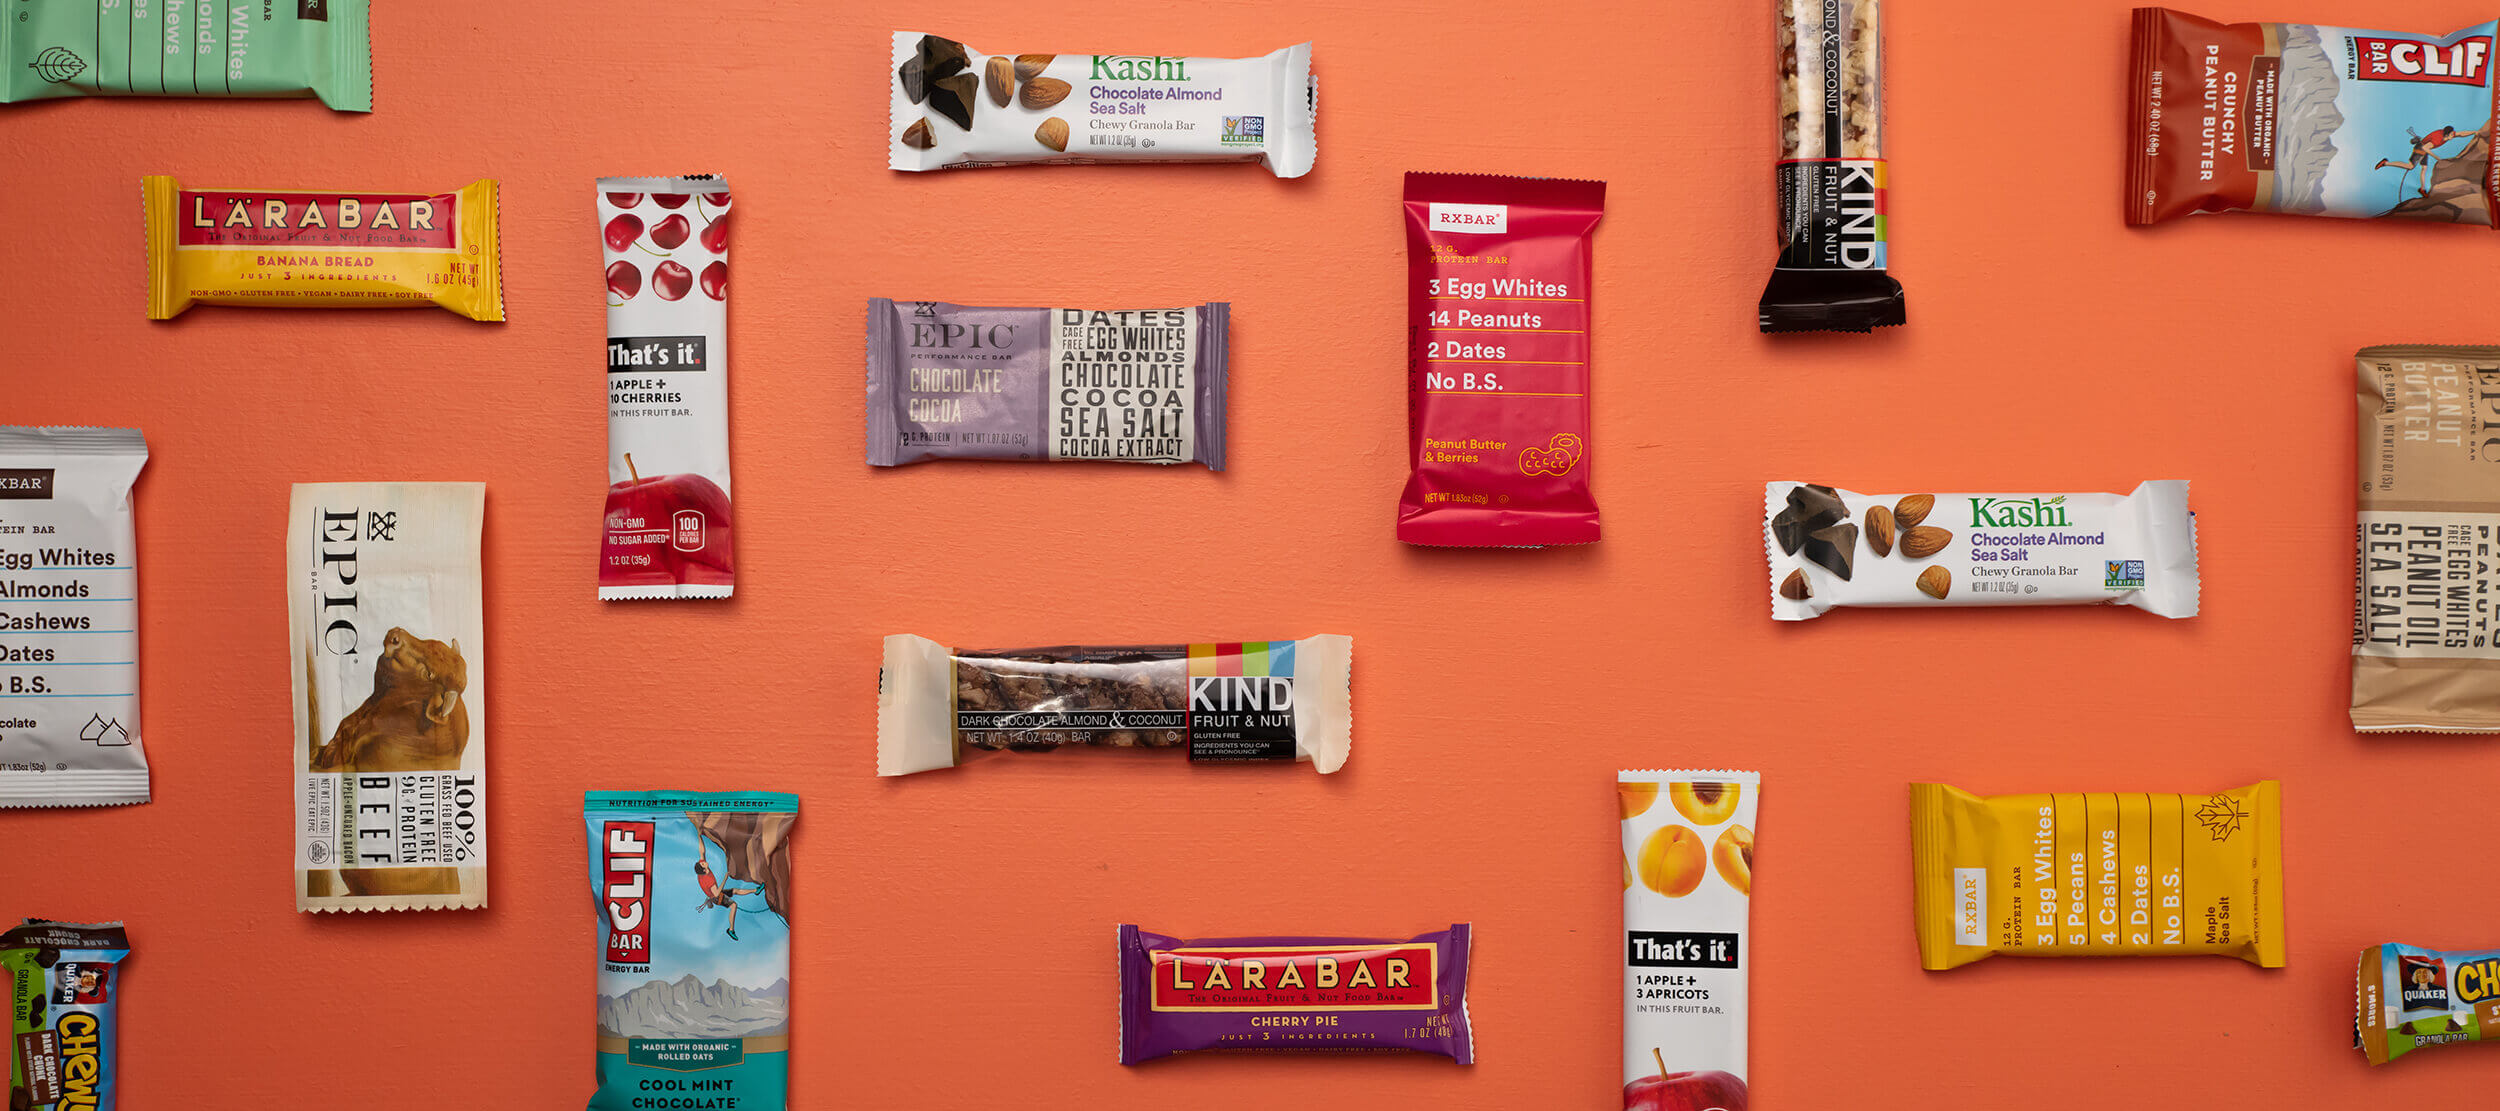 Snack Bar Standouts: Six Packaging Design Elements to Keep in Mind